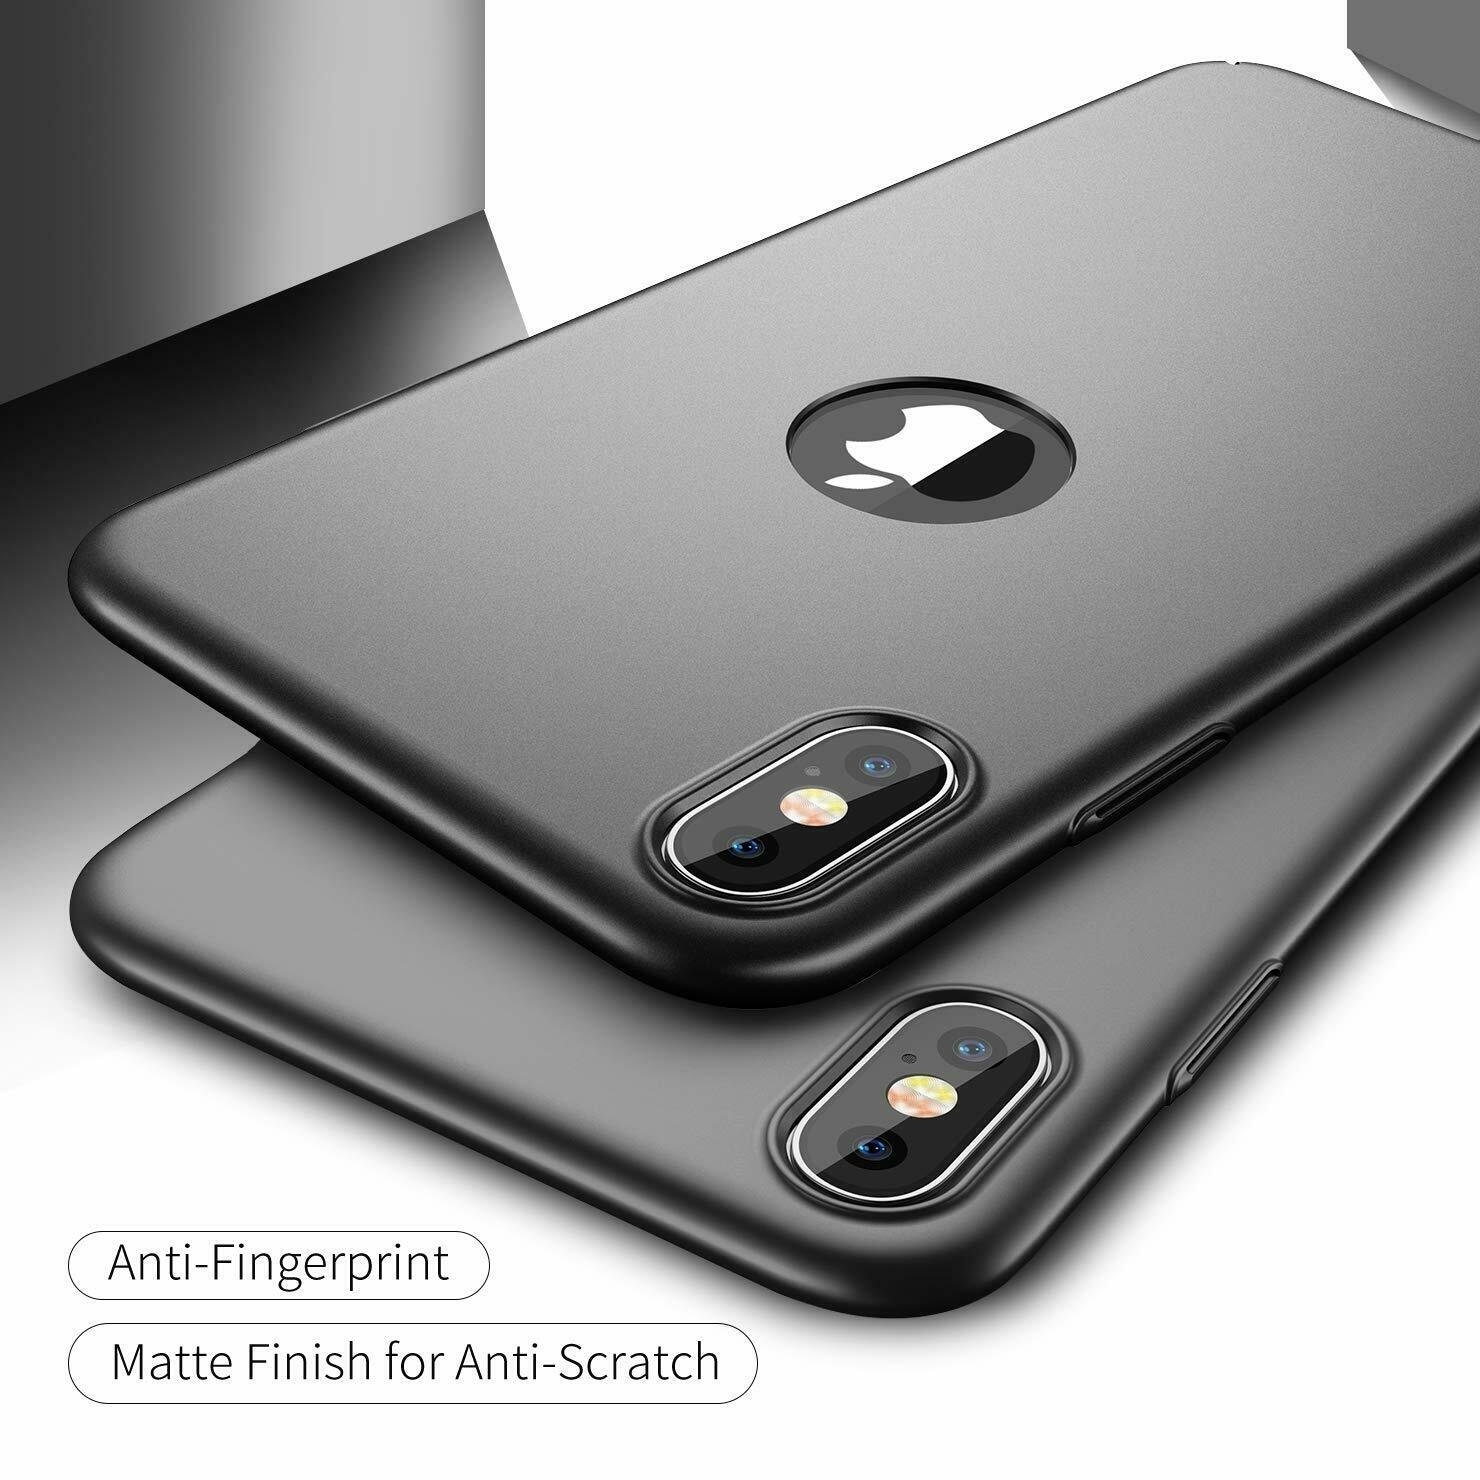 Case-Thin-Hard-Cover-Tempered-Glass-Screen-Protector-For-iPhone-X-XR-XS-Max thumbnail 11